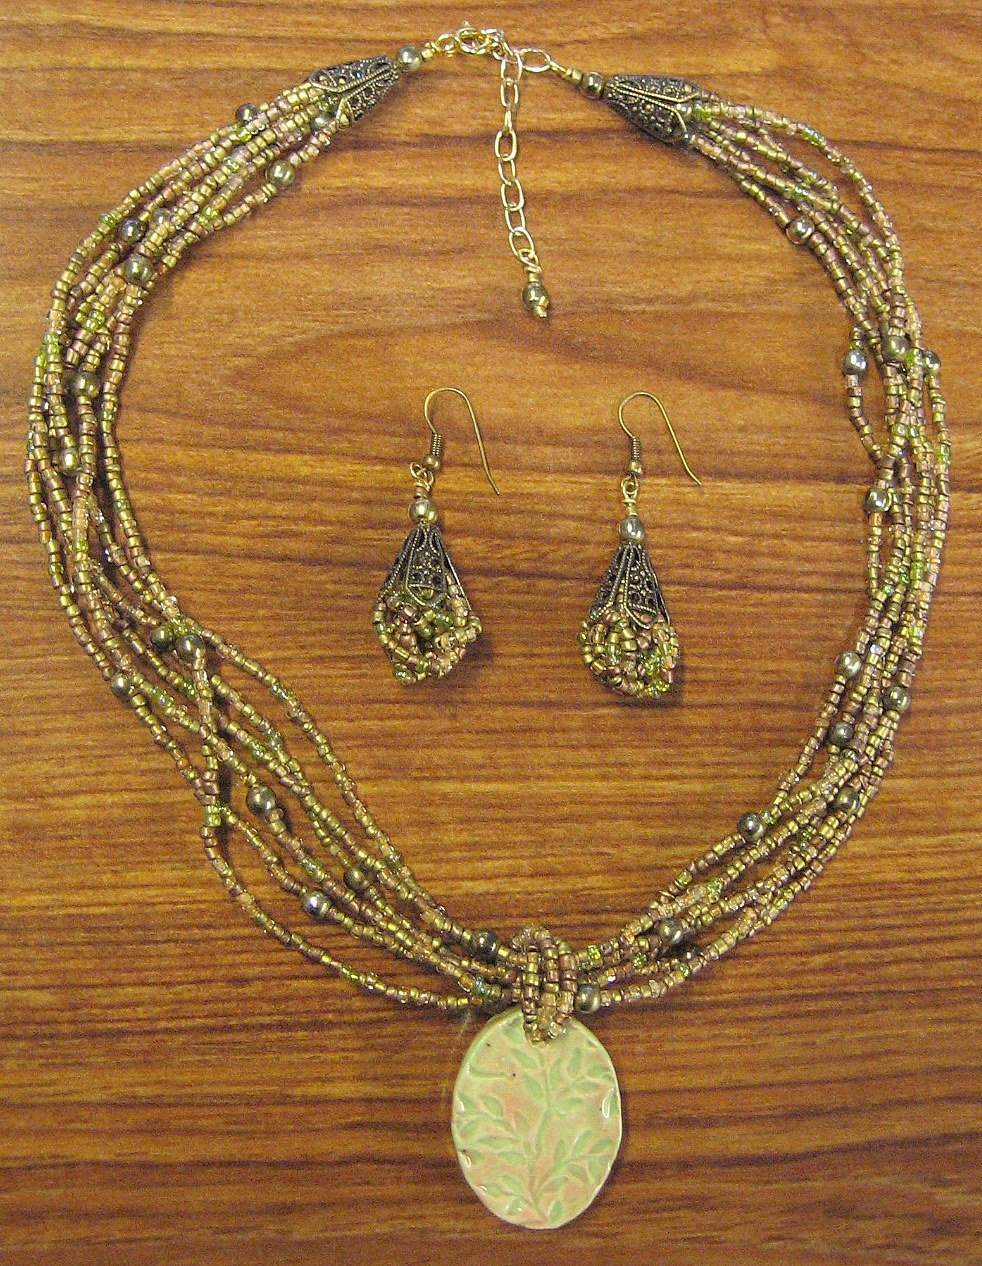 Glass Beaded Jewelry Set OOAK Ceramic Green & Pink Clay Pendant from Designers